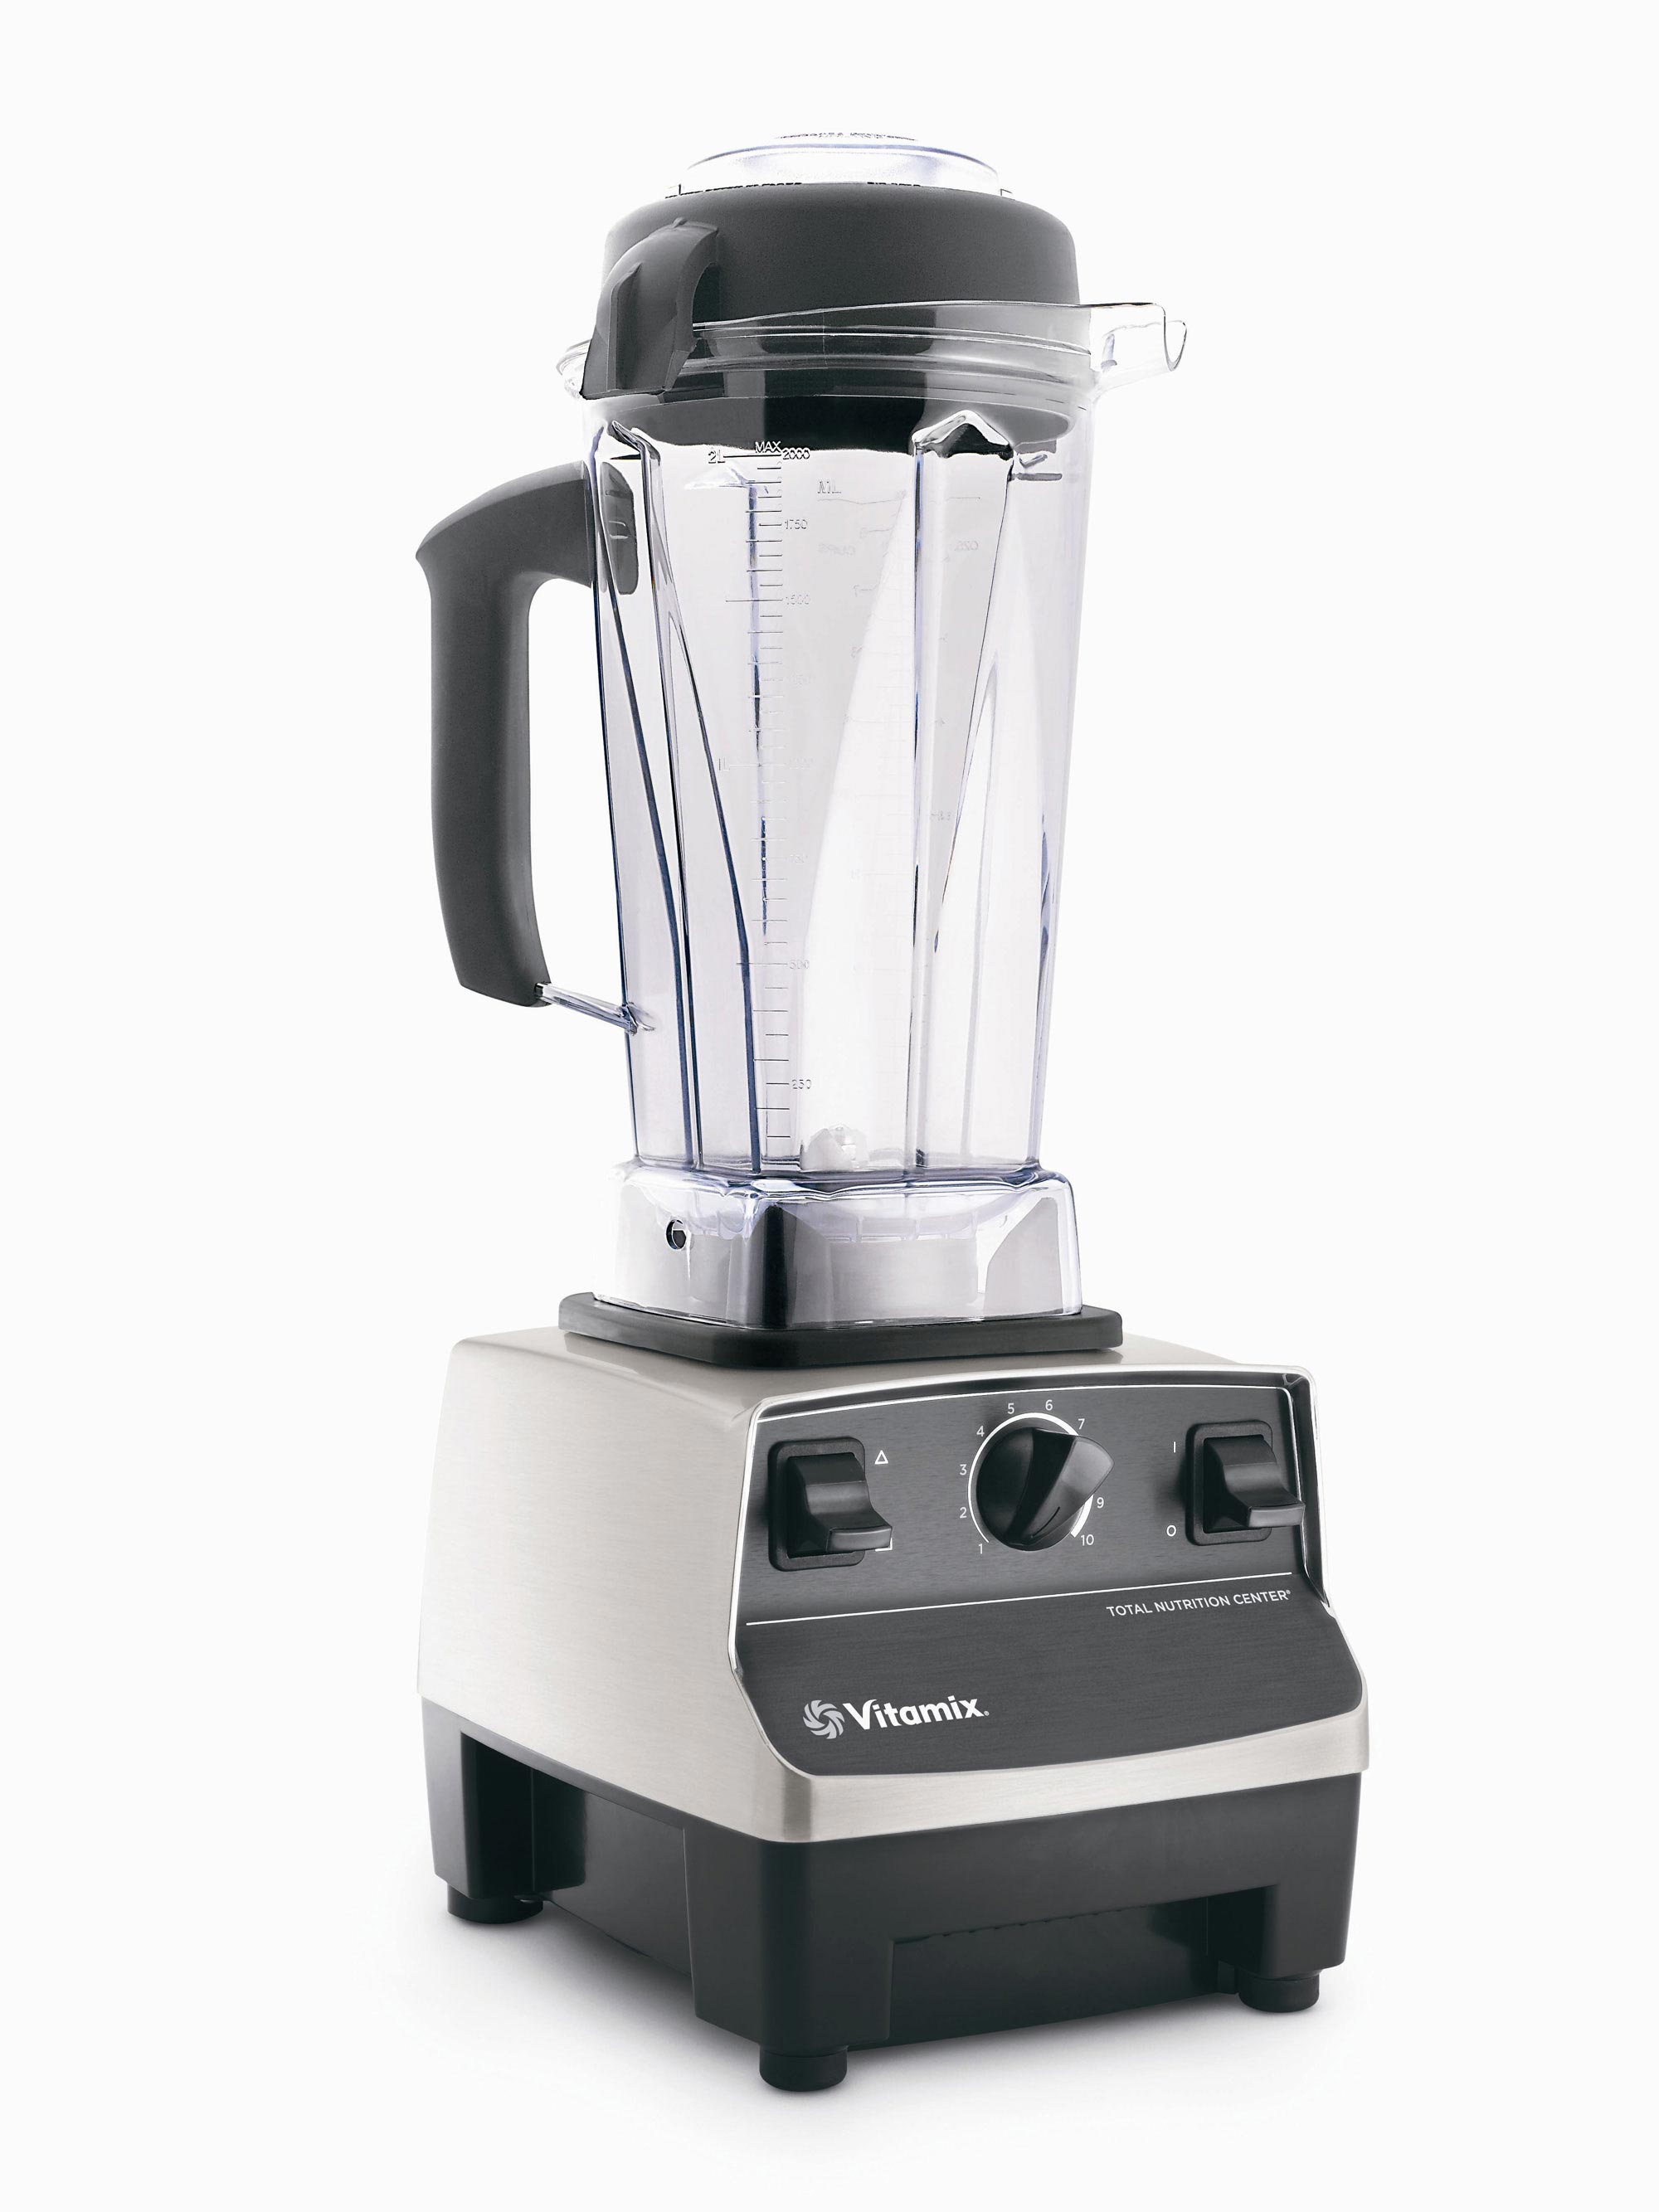 Vitamix Super TNC 5200 Mixer stainless steel look